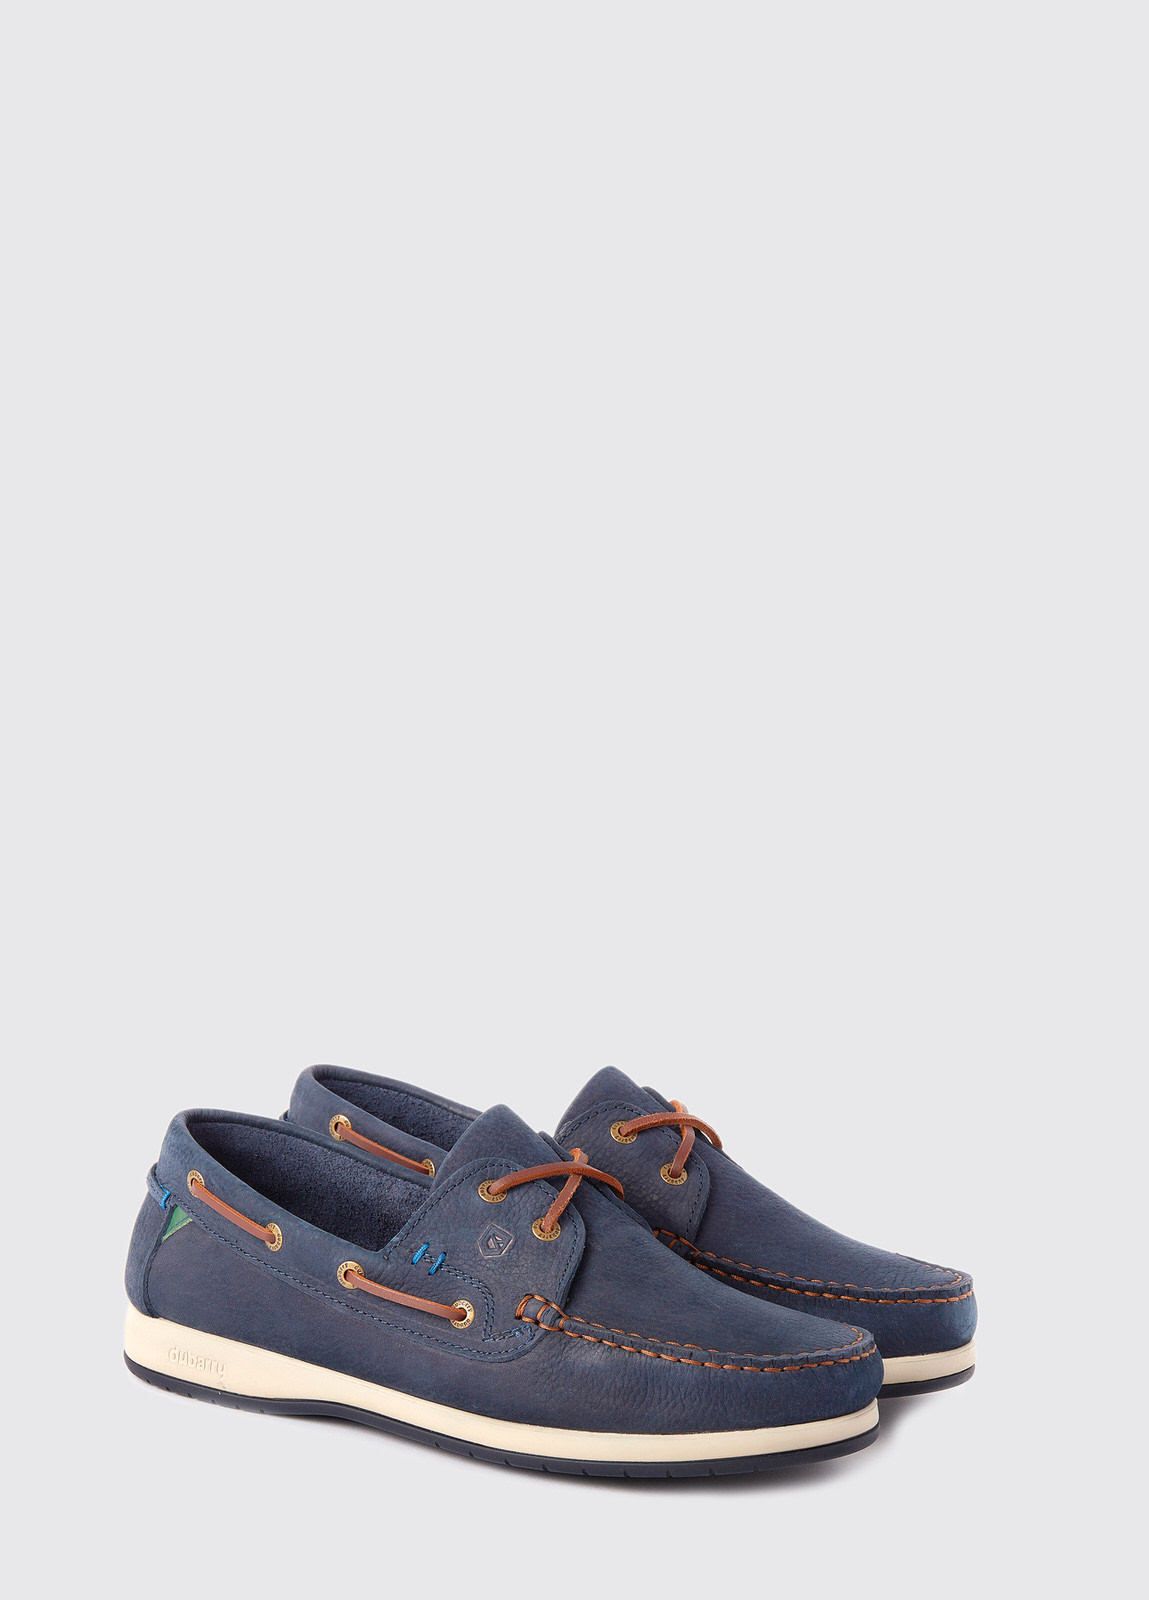 Armada X LT Deck shoes - Navy